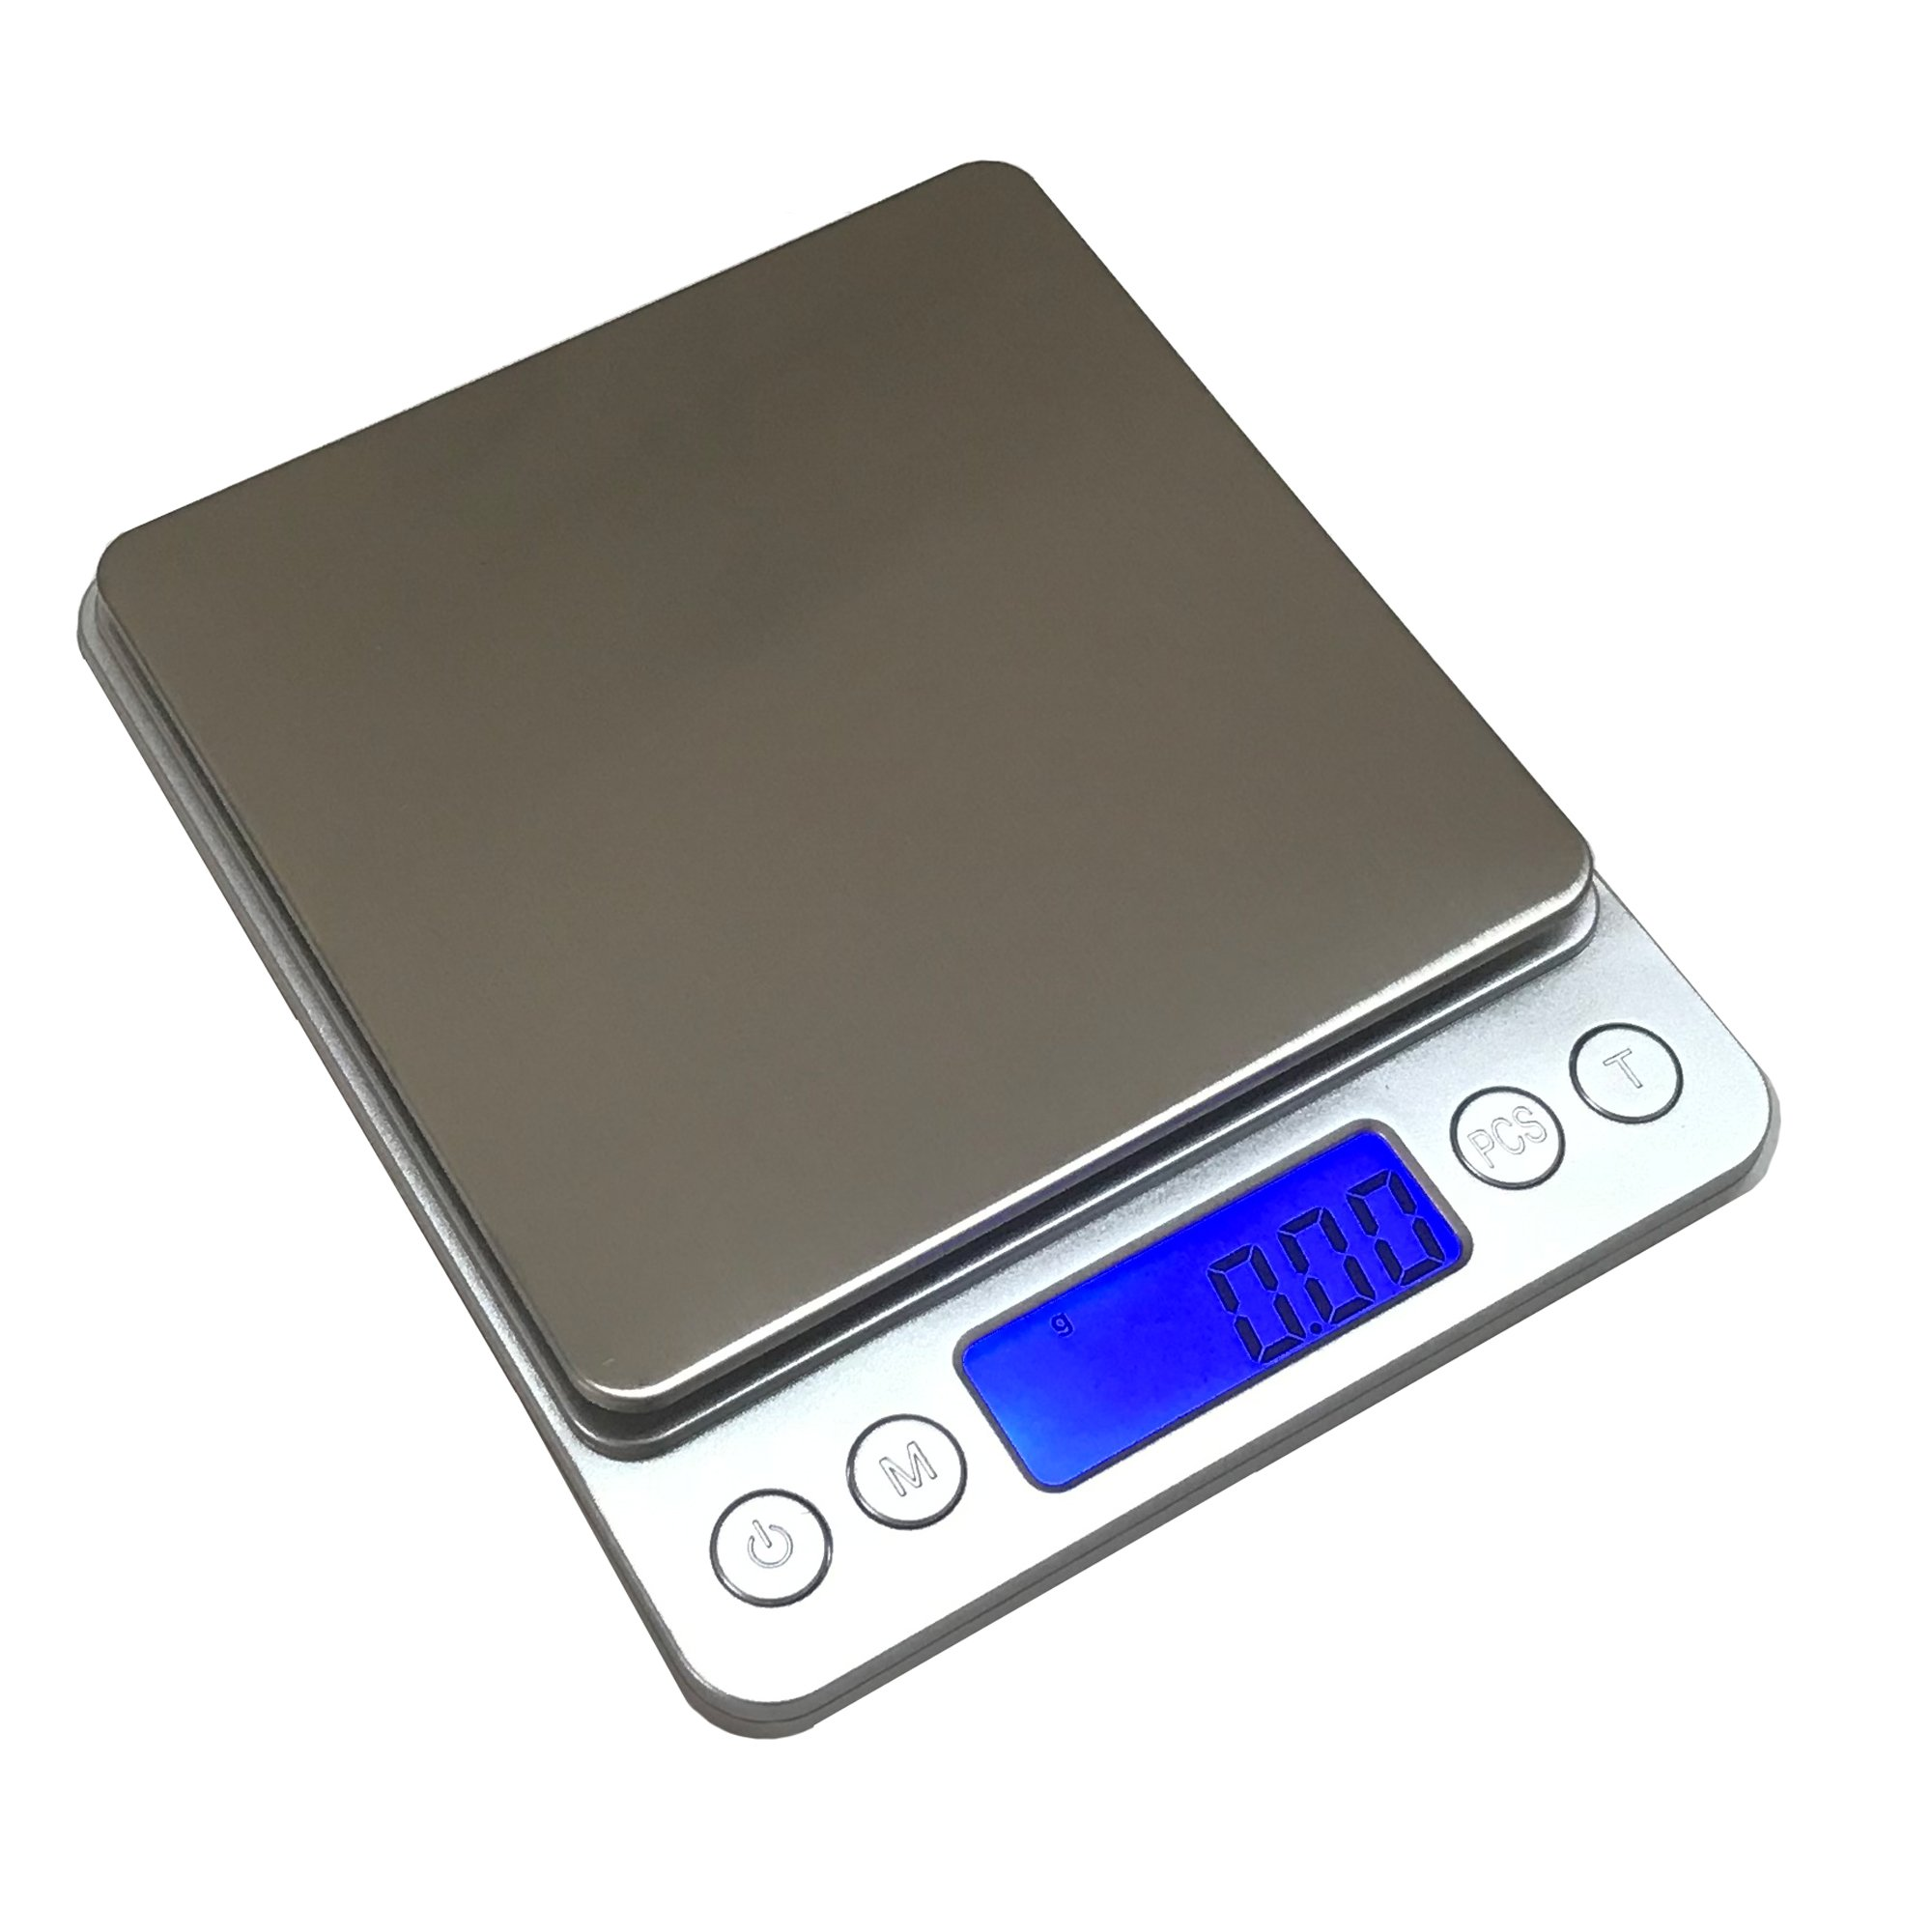 Kitchen Scale, 500 x 0.01g Digital Scale, High-precision Pocket Food Scale, Multifunctional Pro Scale with Back-Lit LCD Display, Tare, PCS Features, Stainless Steel (Silver)